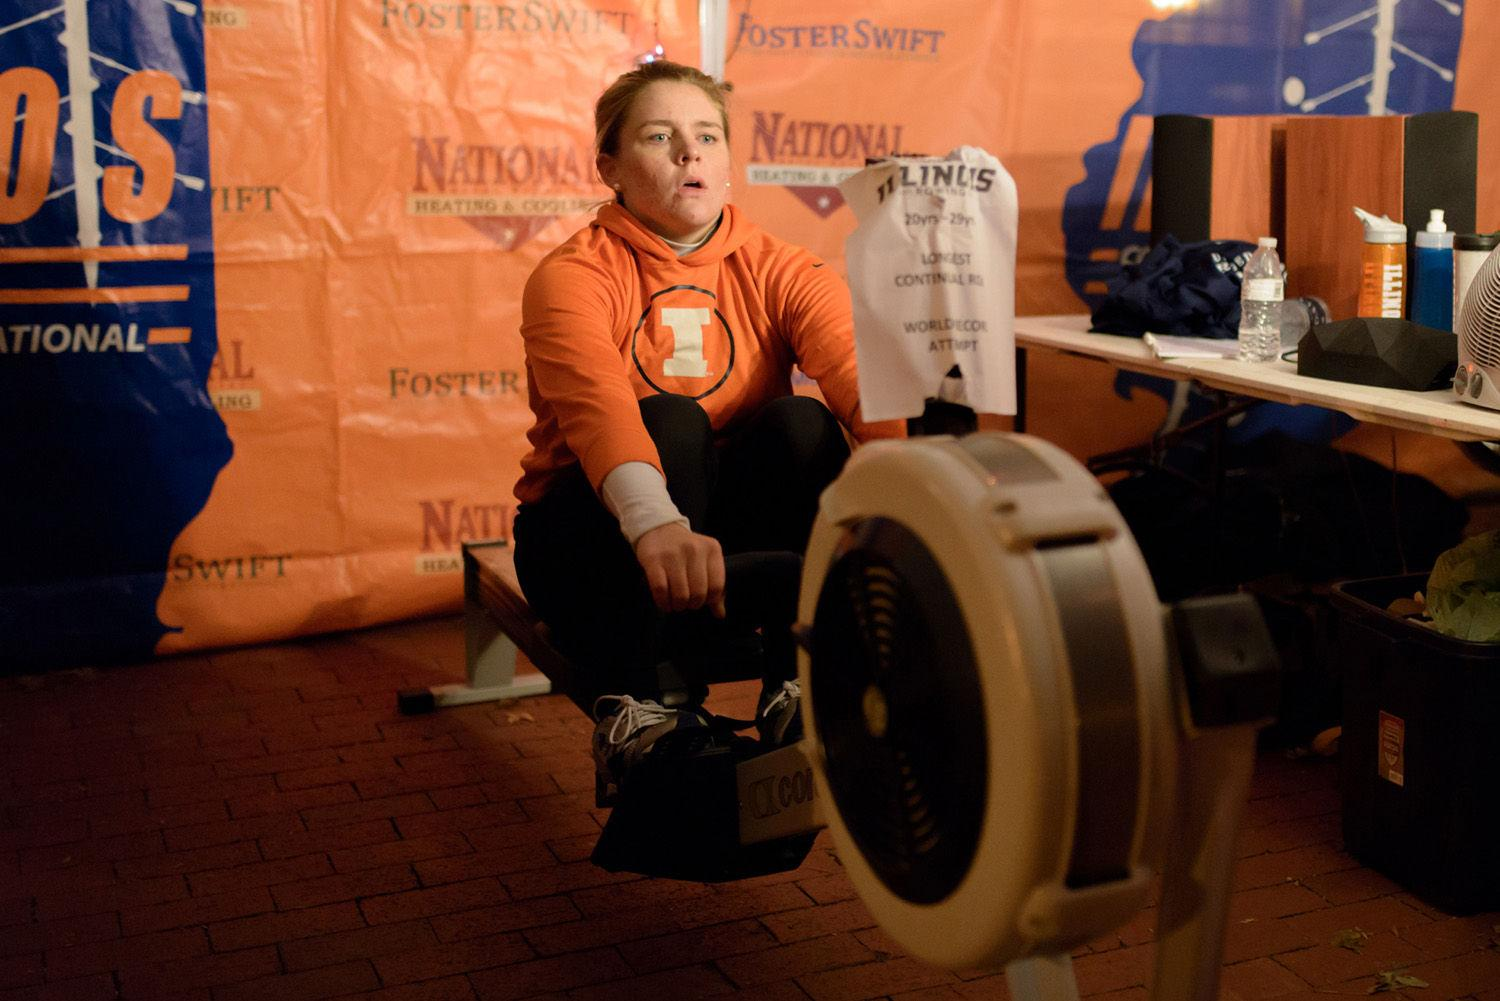 Elizabeth Dunne, senior in Media and member of the rowing team, attempts to break records for continuous rowing at the anniversary plaza on Sunday.